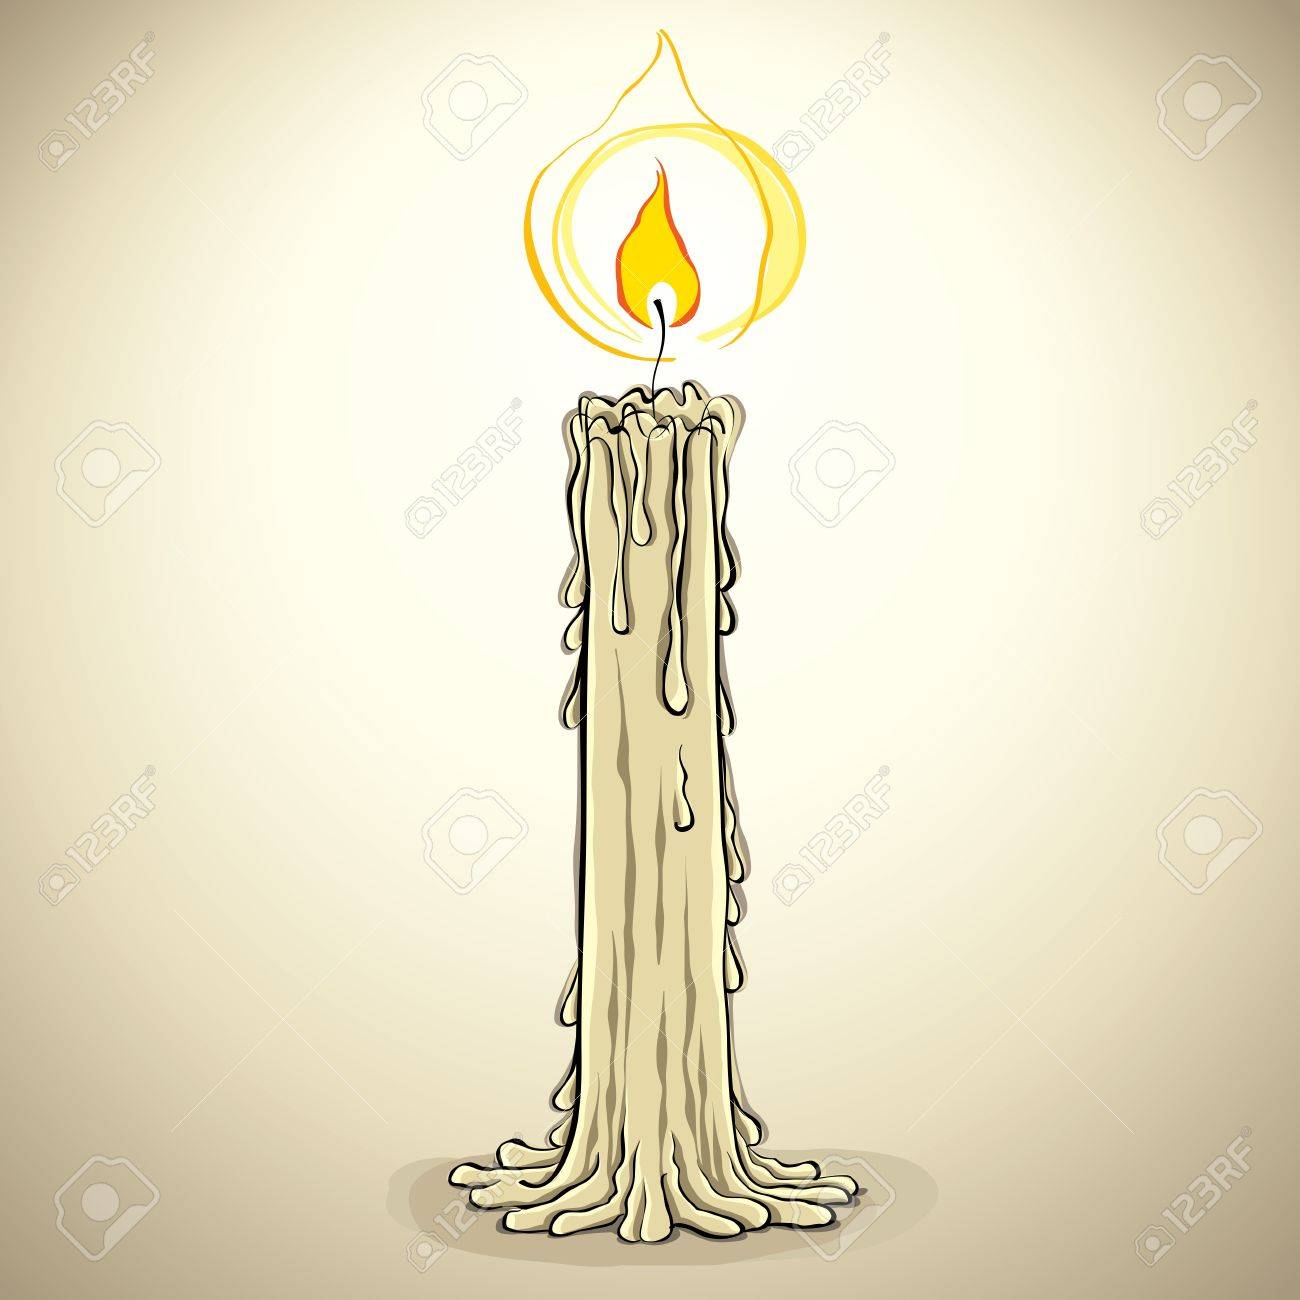 Candle, vector illustration. Stock Vector - 15272459